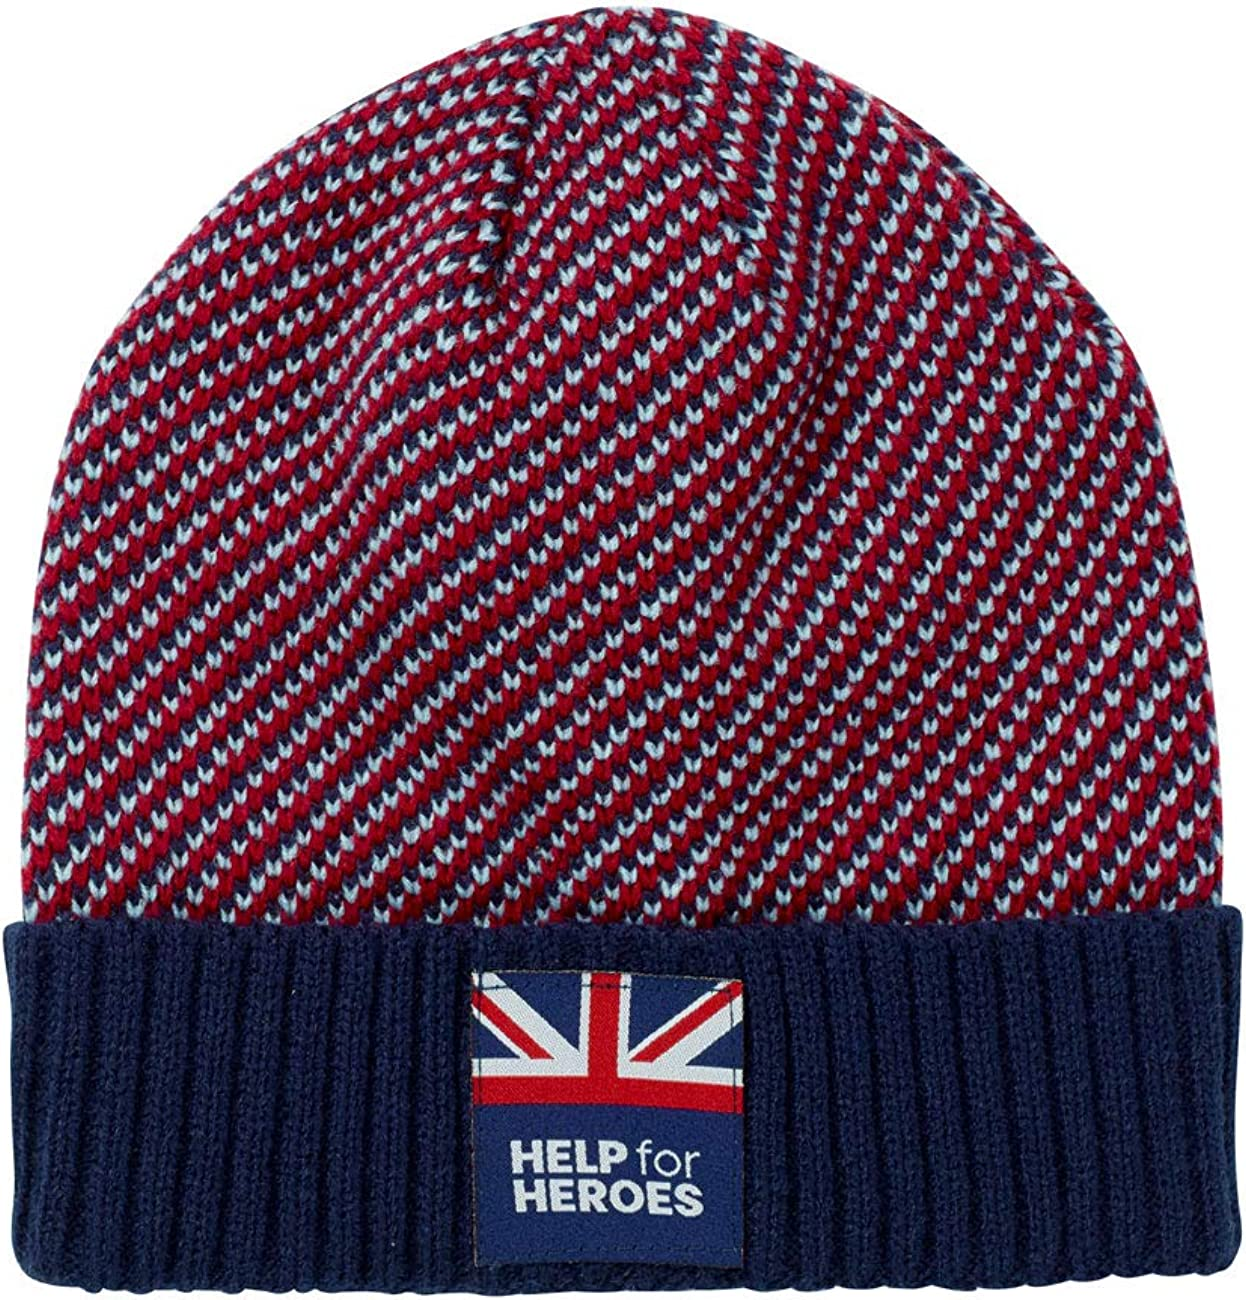 Help for Heroes Woolly Beanie Hat in Tri Colour